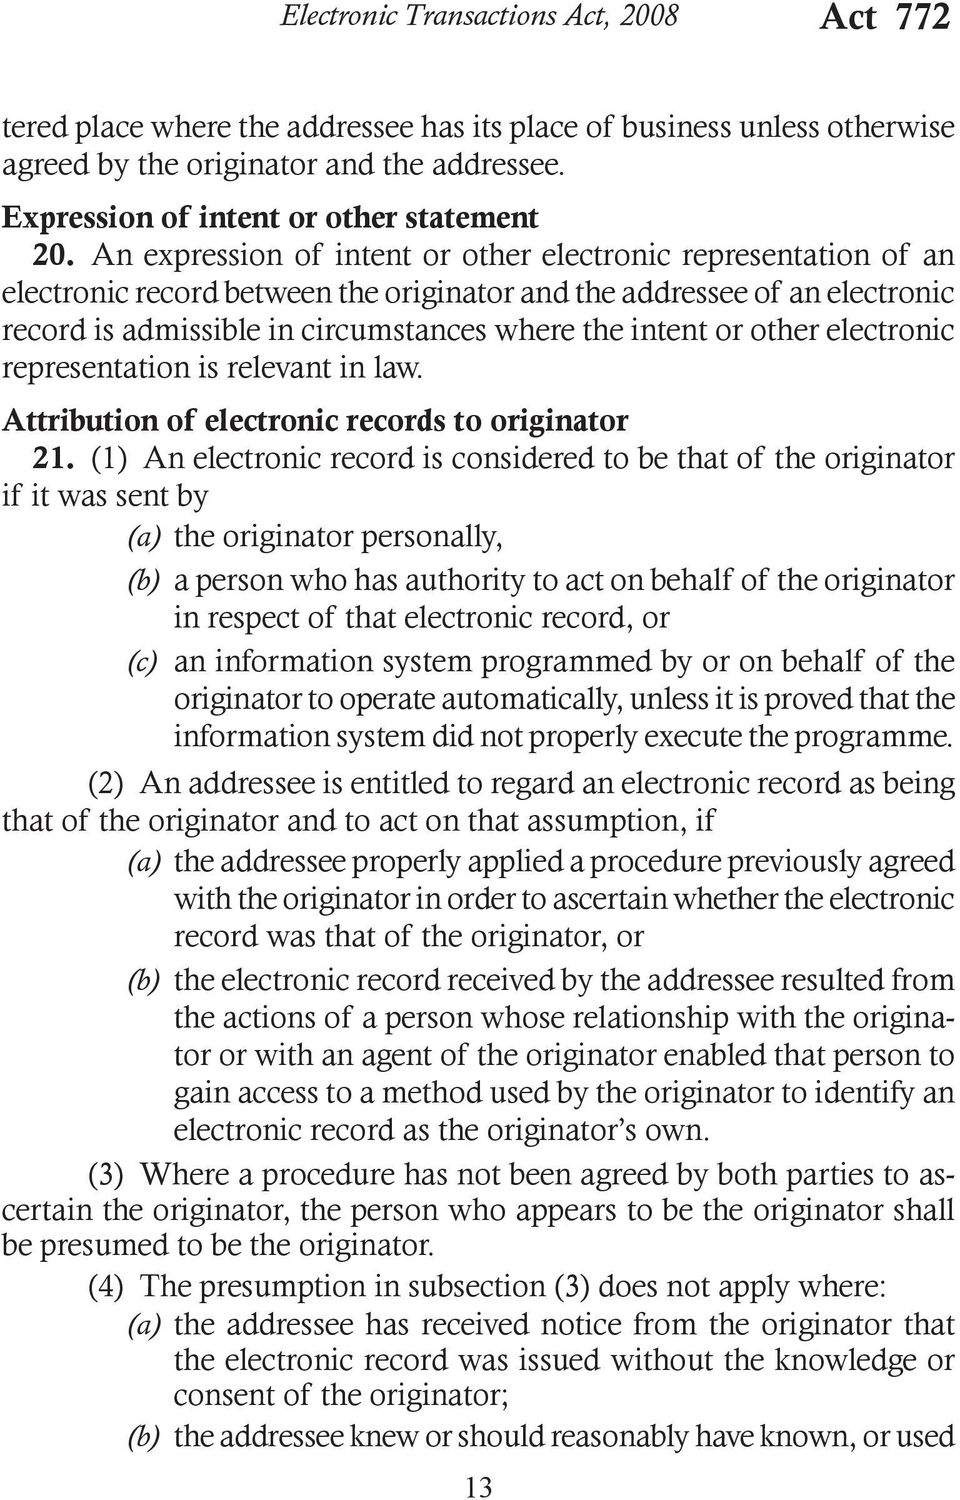 An expression of intent or other electronic representation of an electronic record between the originator and the addressee of an electronic record is admissible in circumstances where the intent or